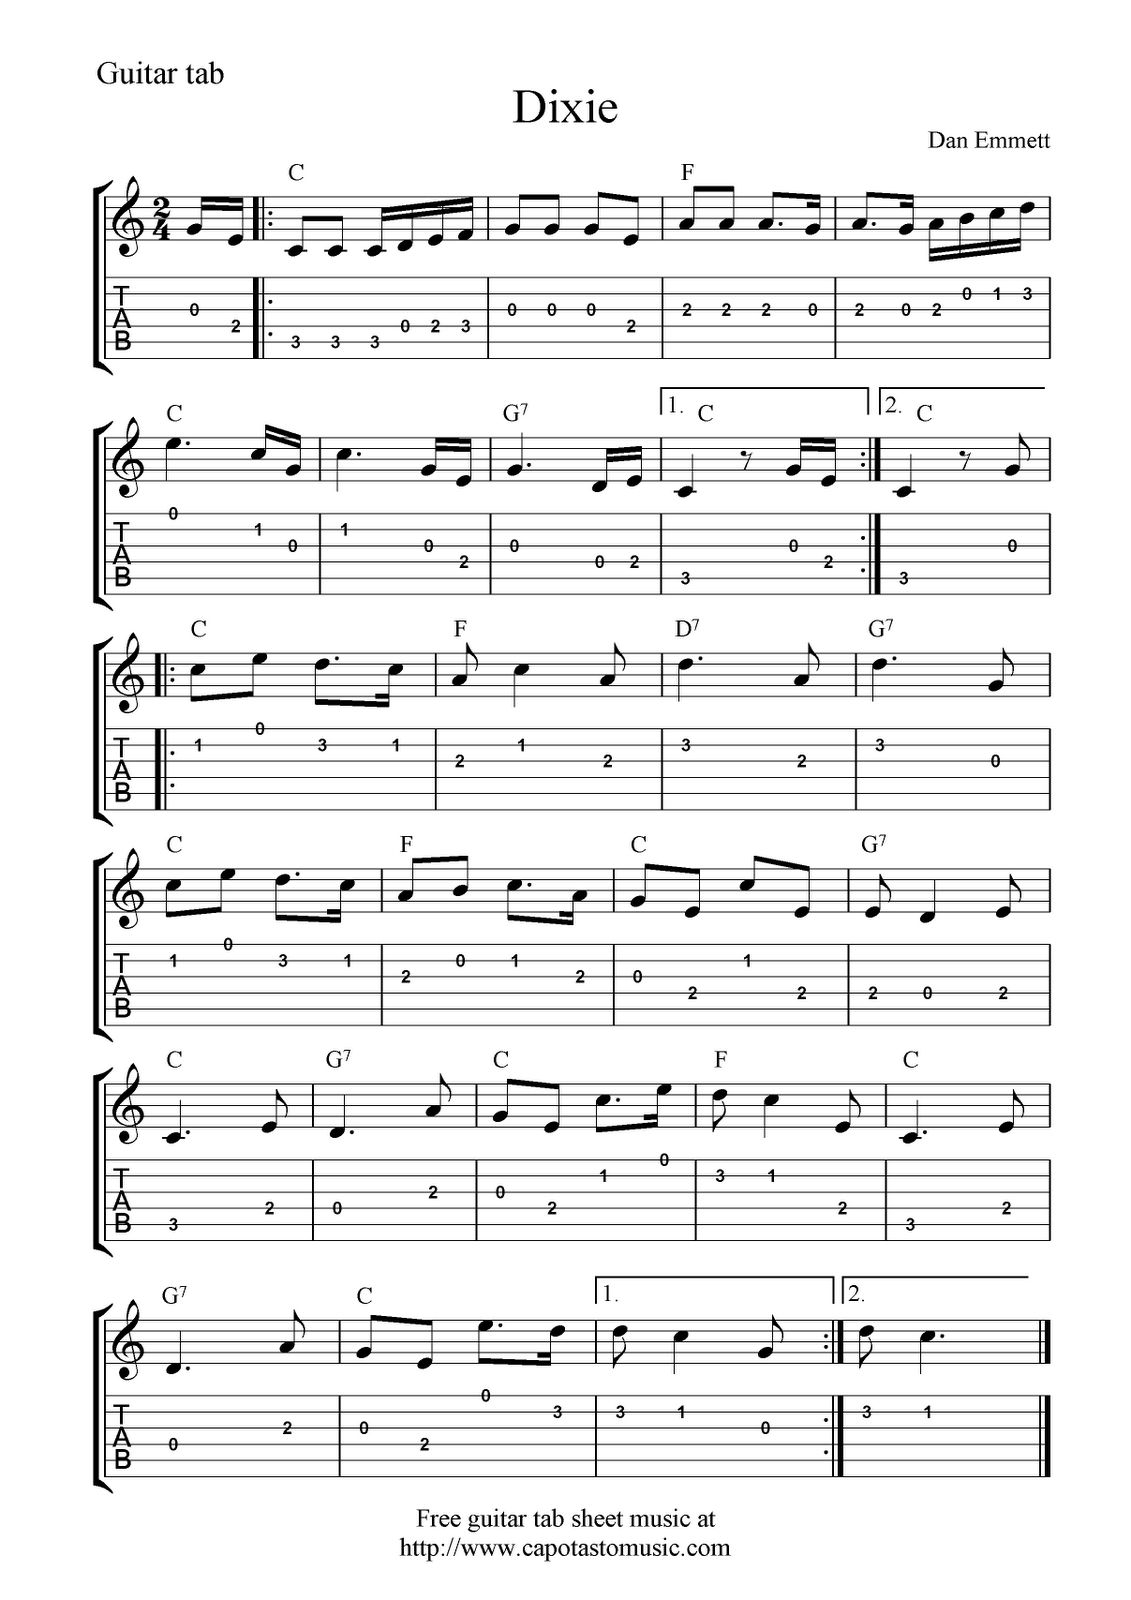 Guitar Music Sheets For Beginners | Free Guitar Tab Sheet Music - Free Printable Guitar Tabs For Beginners